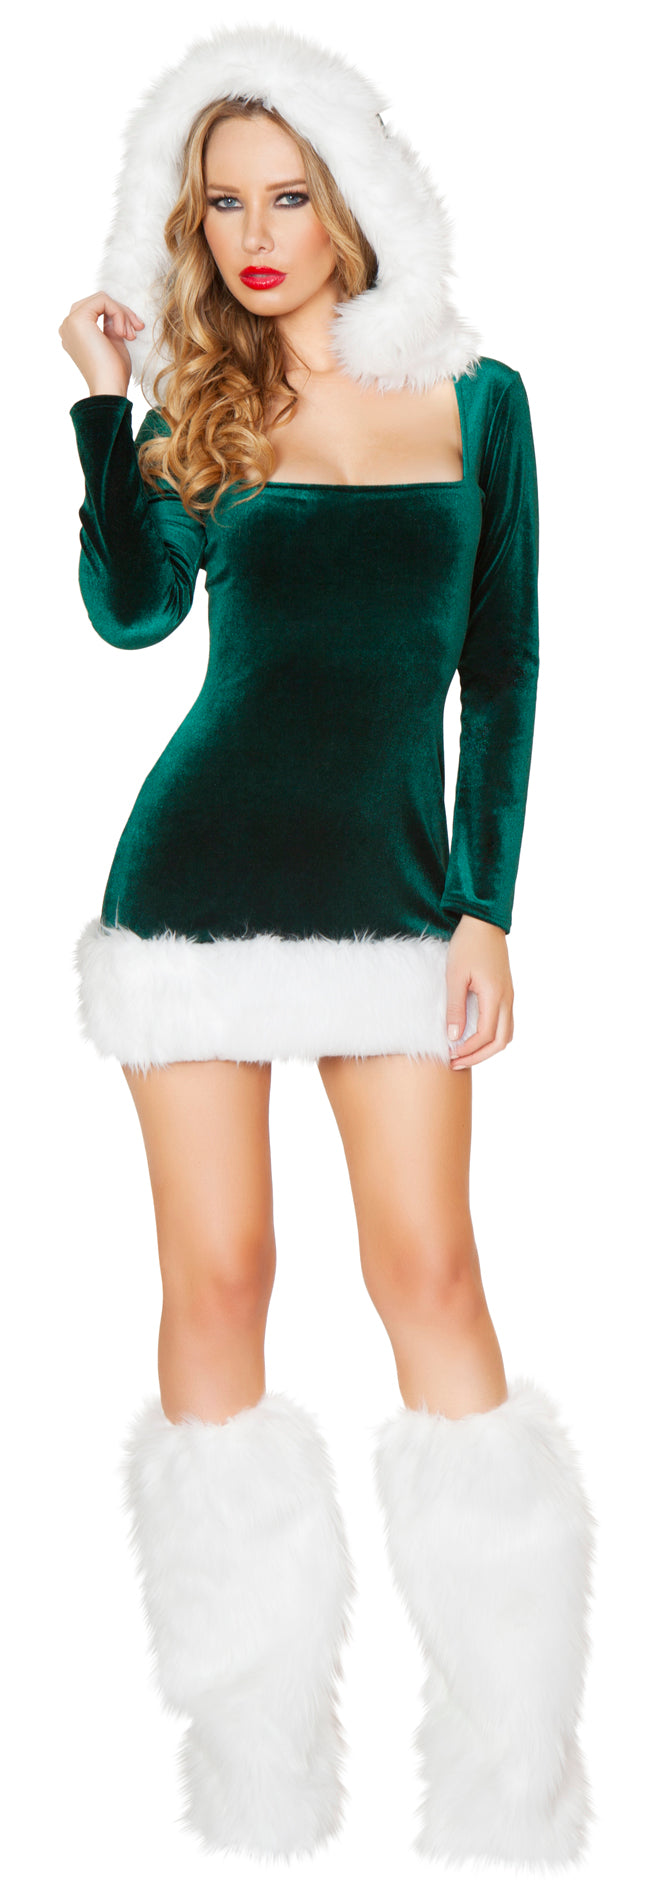 Elf Beauty Christmas Costume Front RMC174